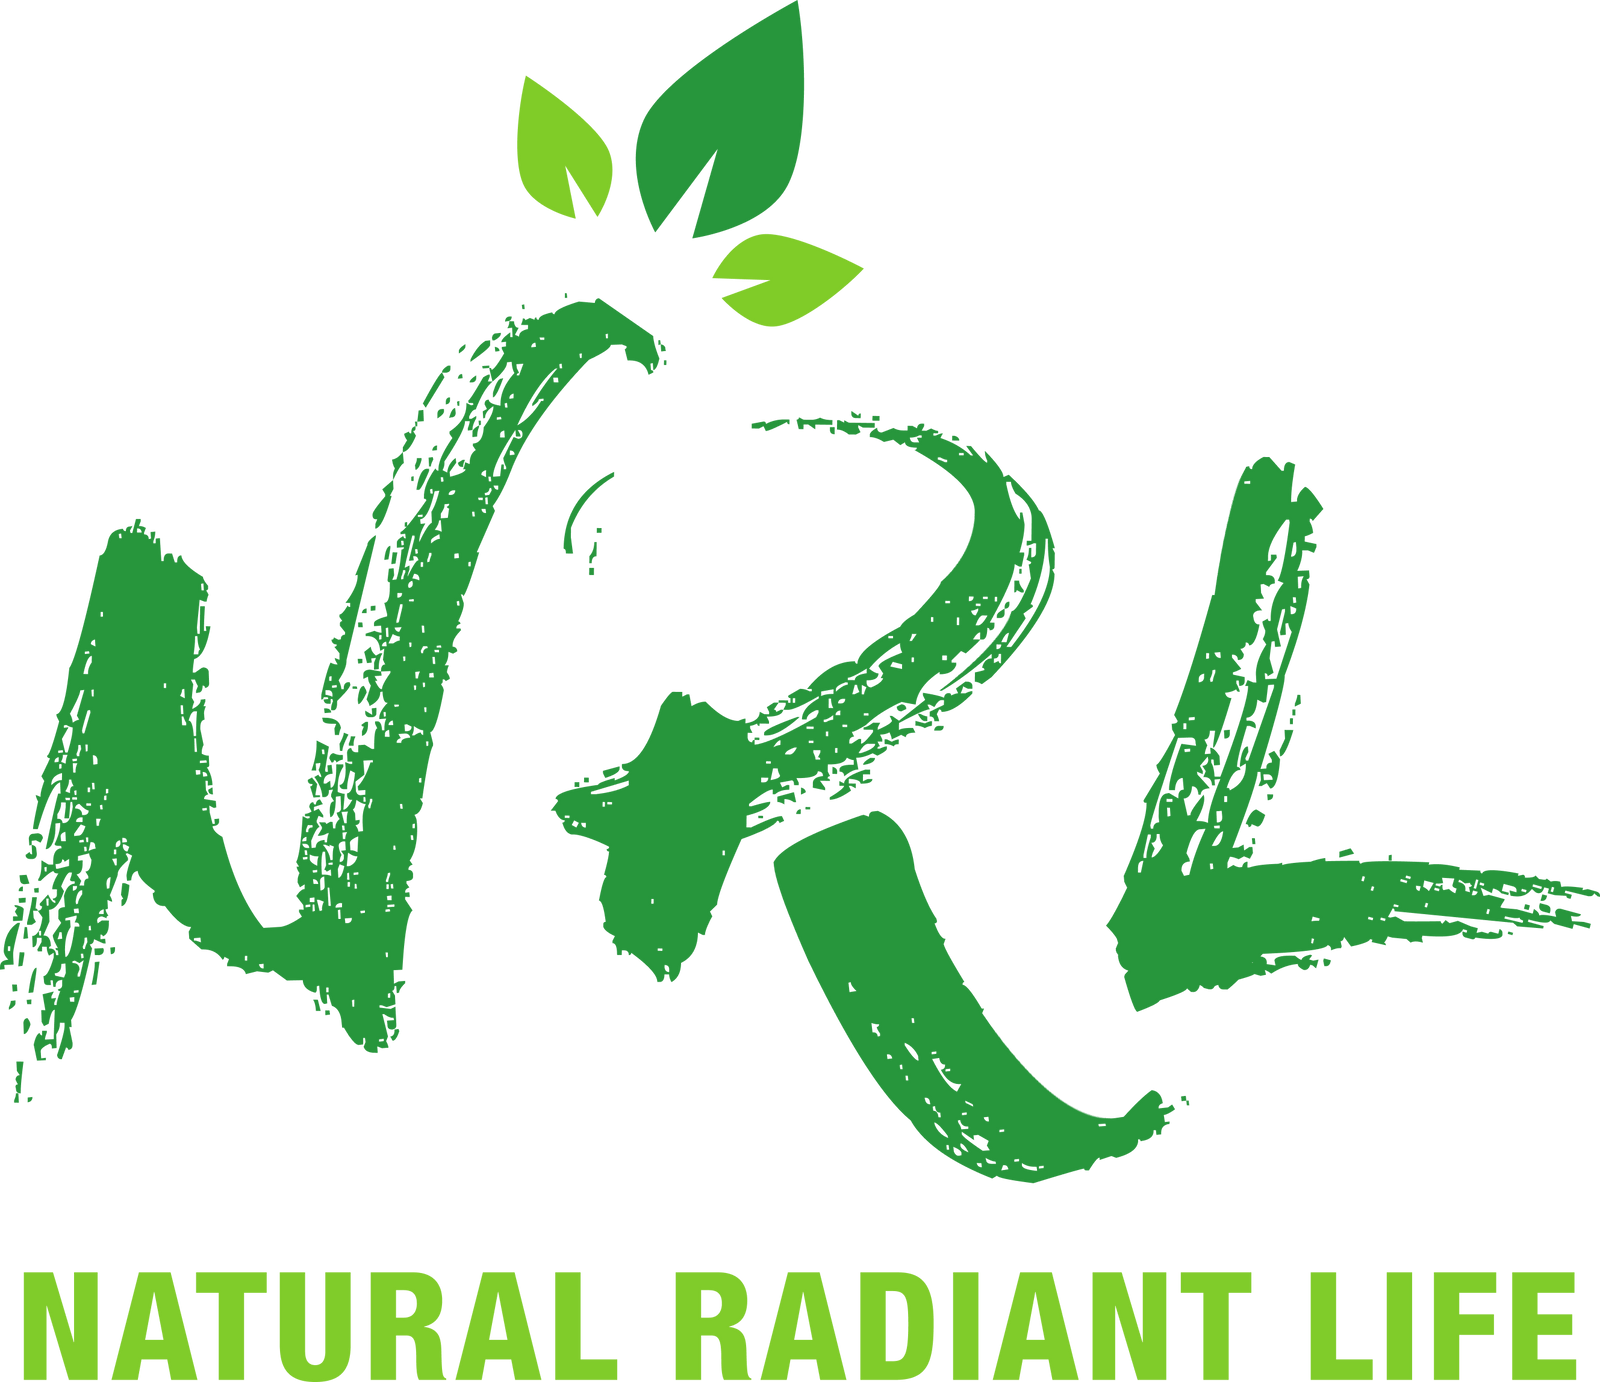 natural radiant life logo